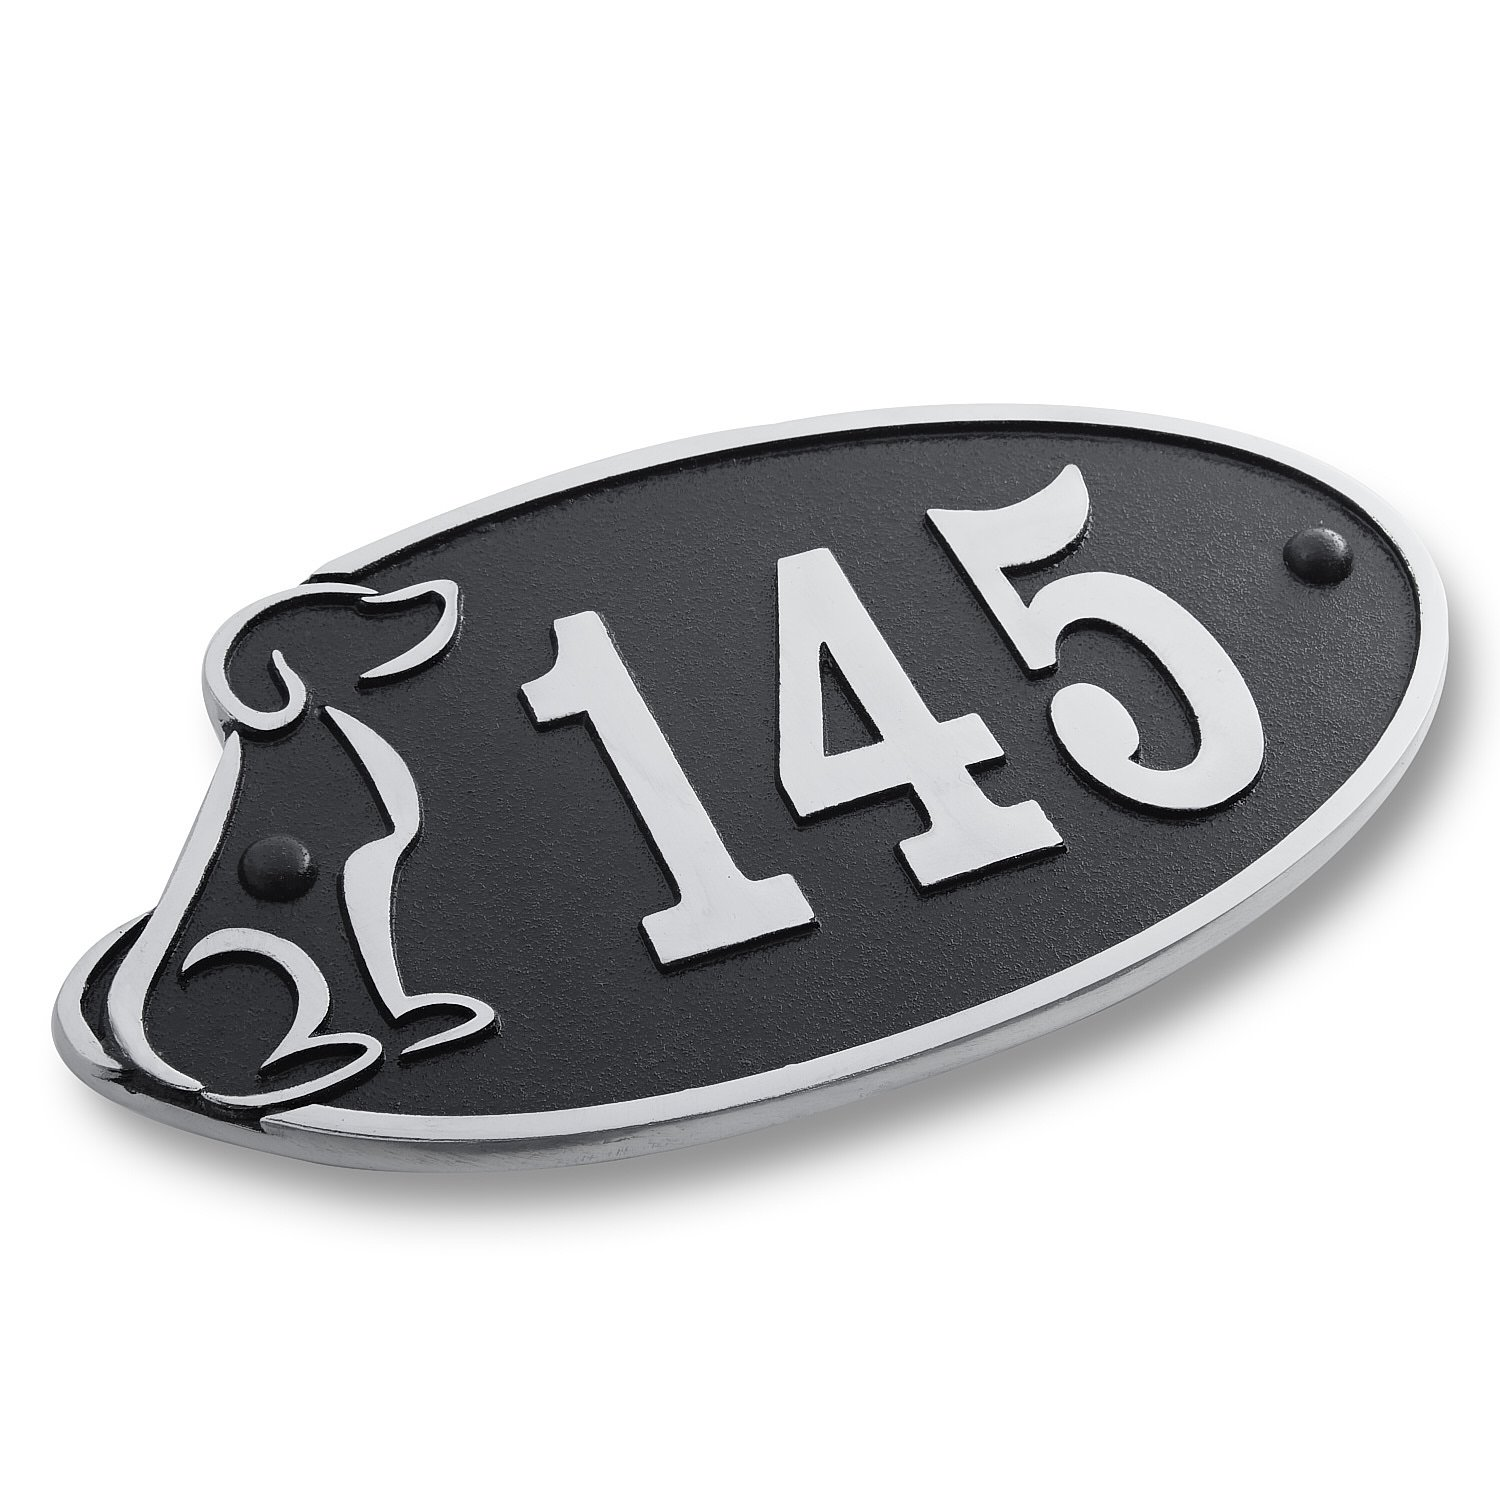 House Number Address Plaque Perfect For Dog Lovers. Cast Metal Personalised Yard Or Mailbox Sign With Oodles Of Color, Number And Letter Options. Handmade In England By The Metal Foundry Just For You